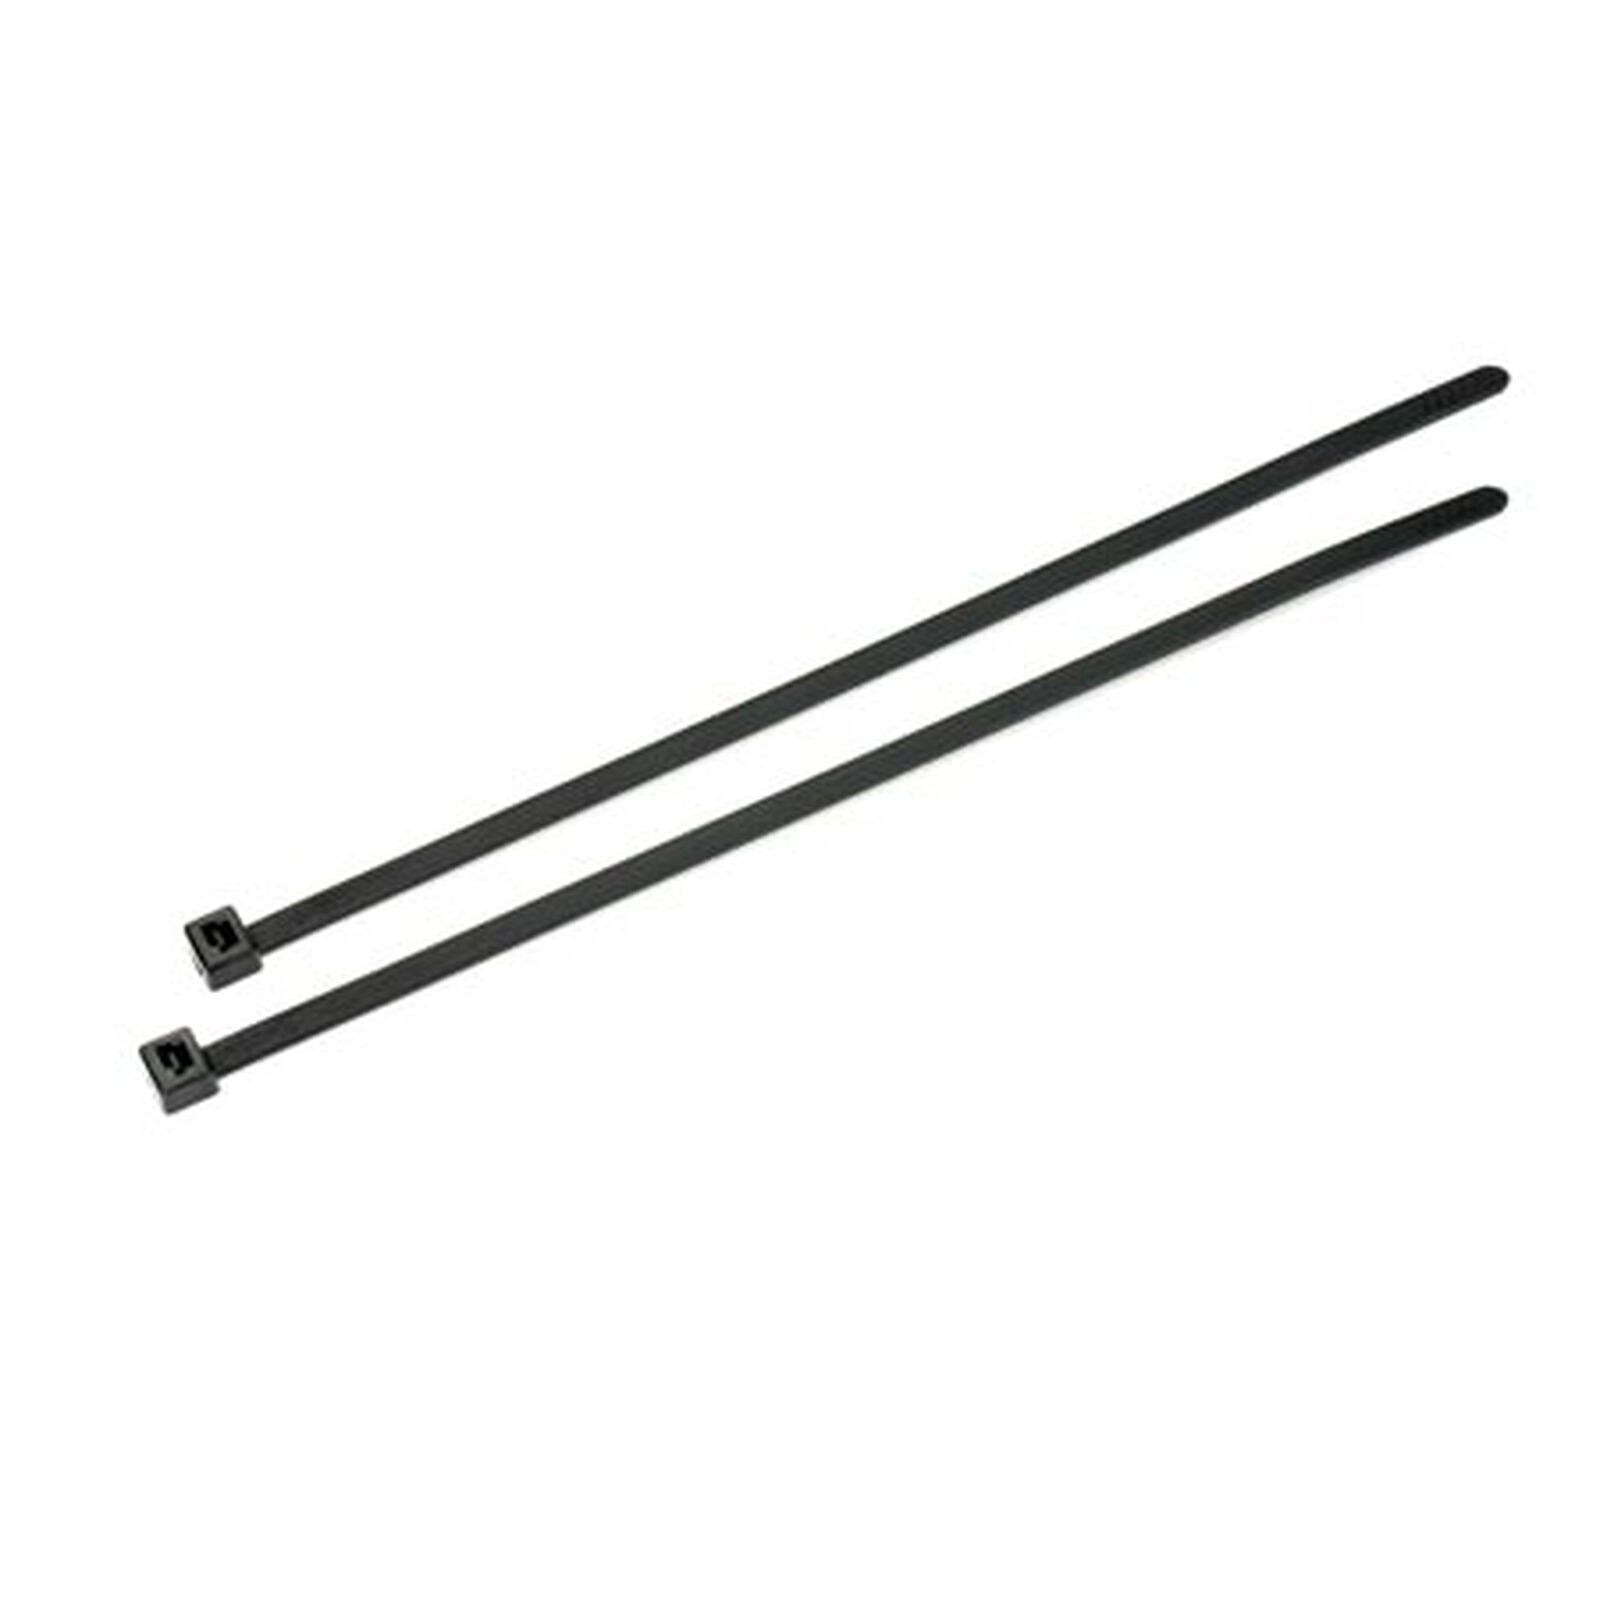 Cable Tie, Muffler